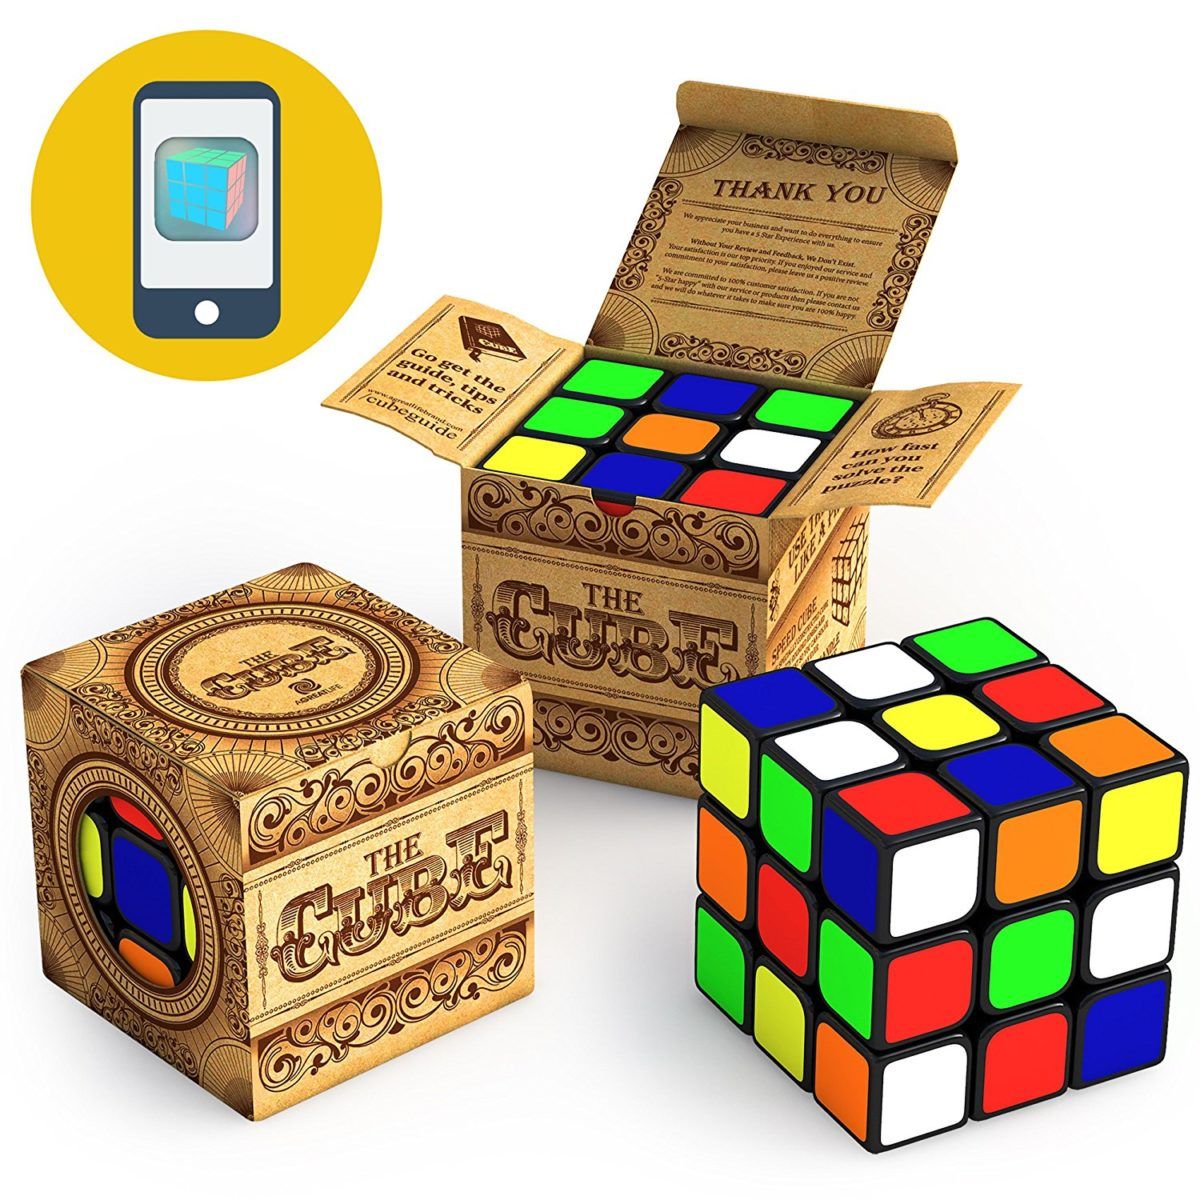 The Cube: Turns Quicker and More Precisely Than Original; Super-durable With Vivid Colors; Best-selling 3×3 Cube; Easy Turning and Smooth Play